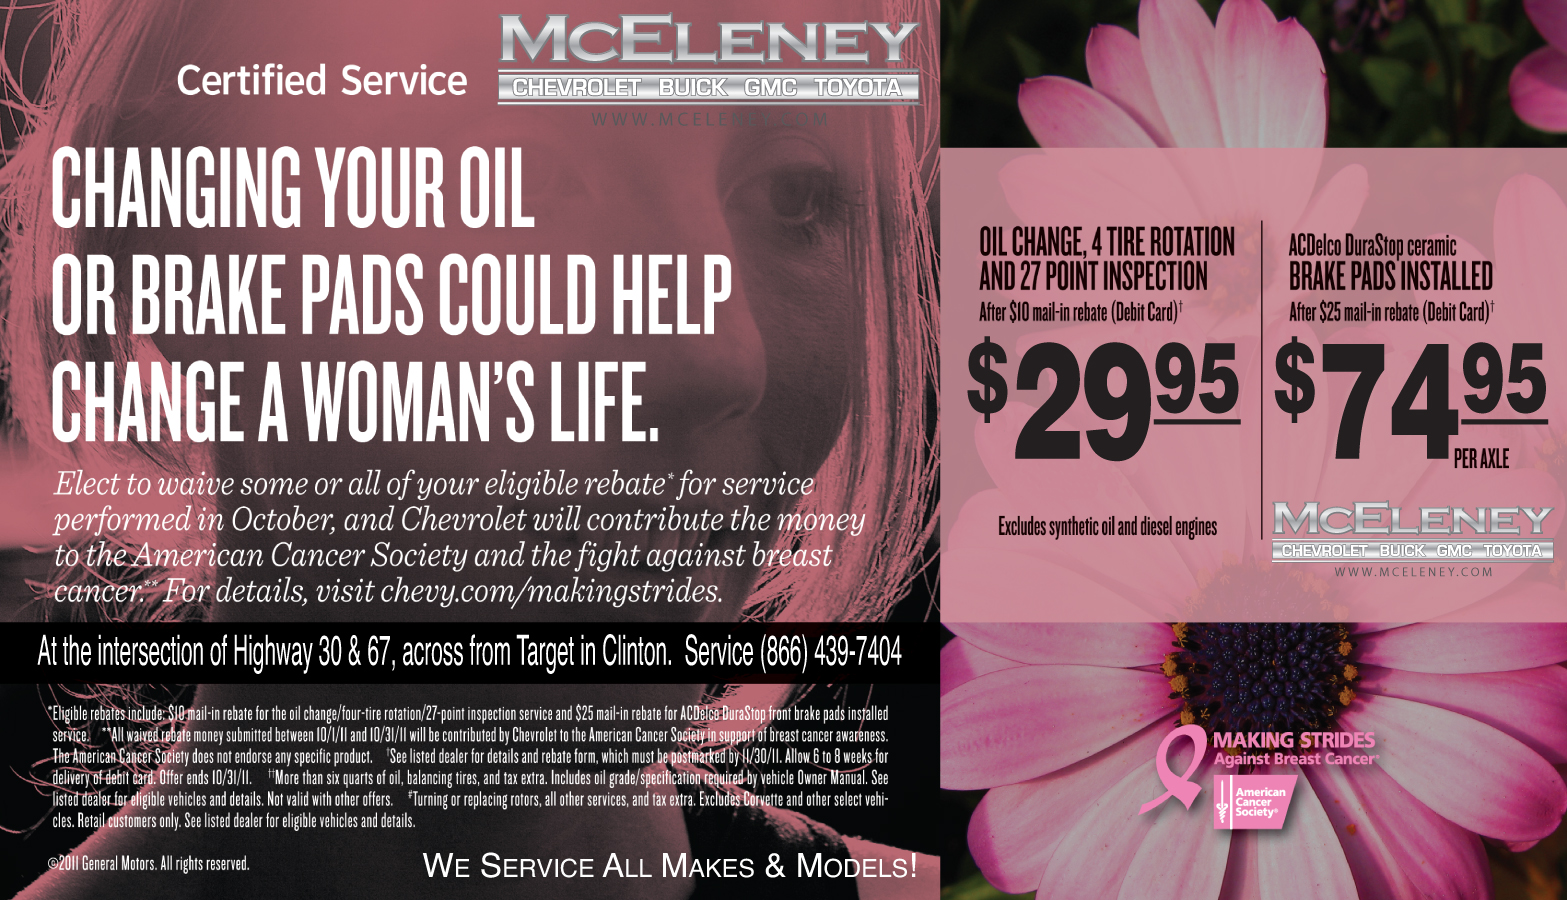 Mceleney Chevrolet Buick Gmc Toyota Join Us In The Fight